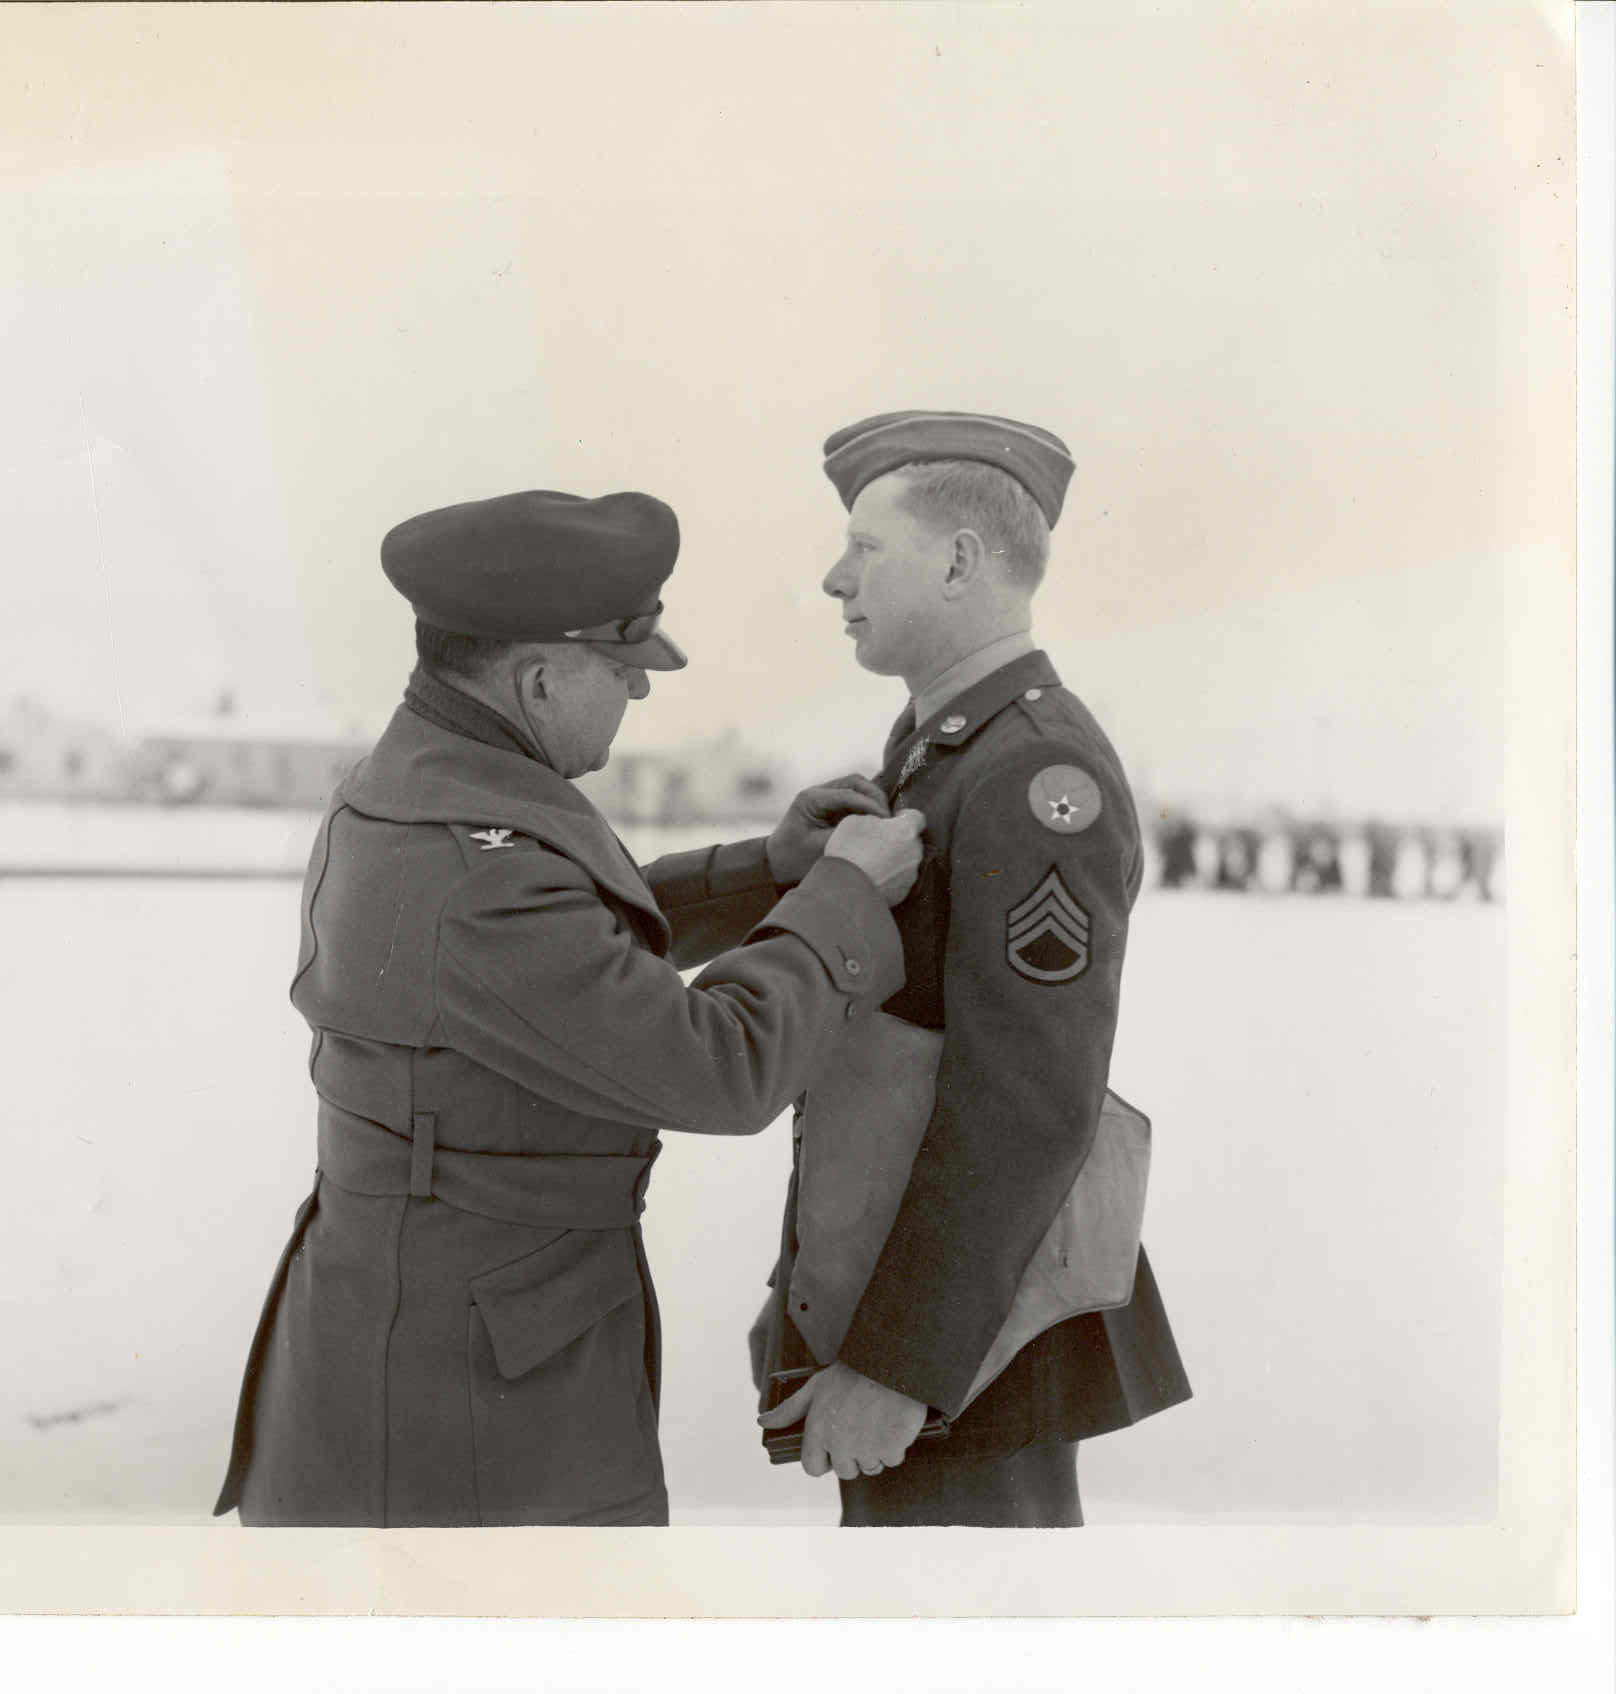 "Everett (Pete) Stults, a gunner in World War II, receiving a medal.  Photo provided to Orchestra of Southern Utah by Nina Hansen, daughter-in-law of Stults. Nina Hansen is principal cellist with the Orchestra of Southern Utah and perform ""Kol Nidrei"" by Max Bruch at the performance previewed in the attached report. 